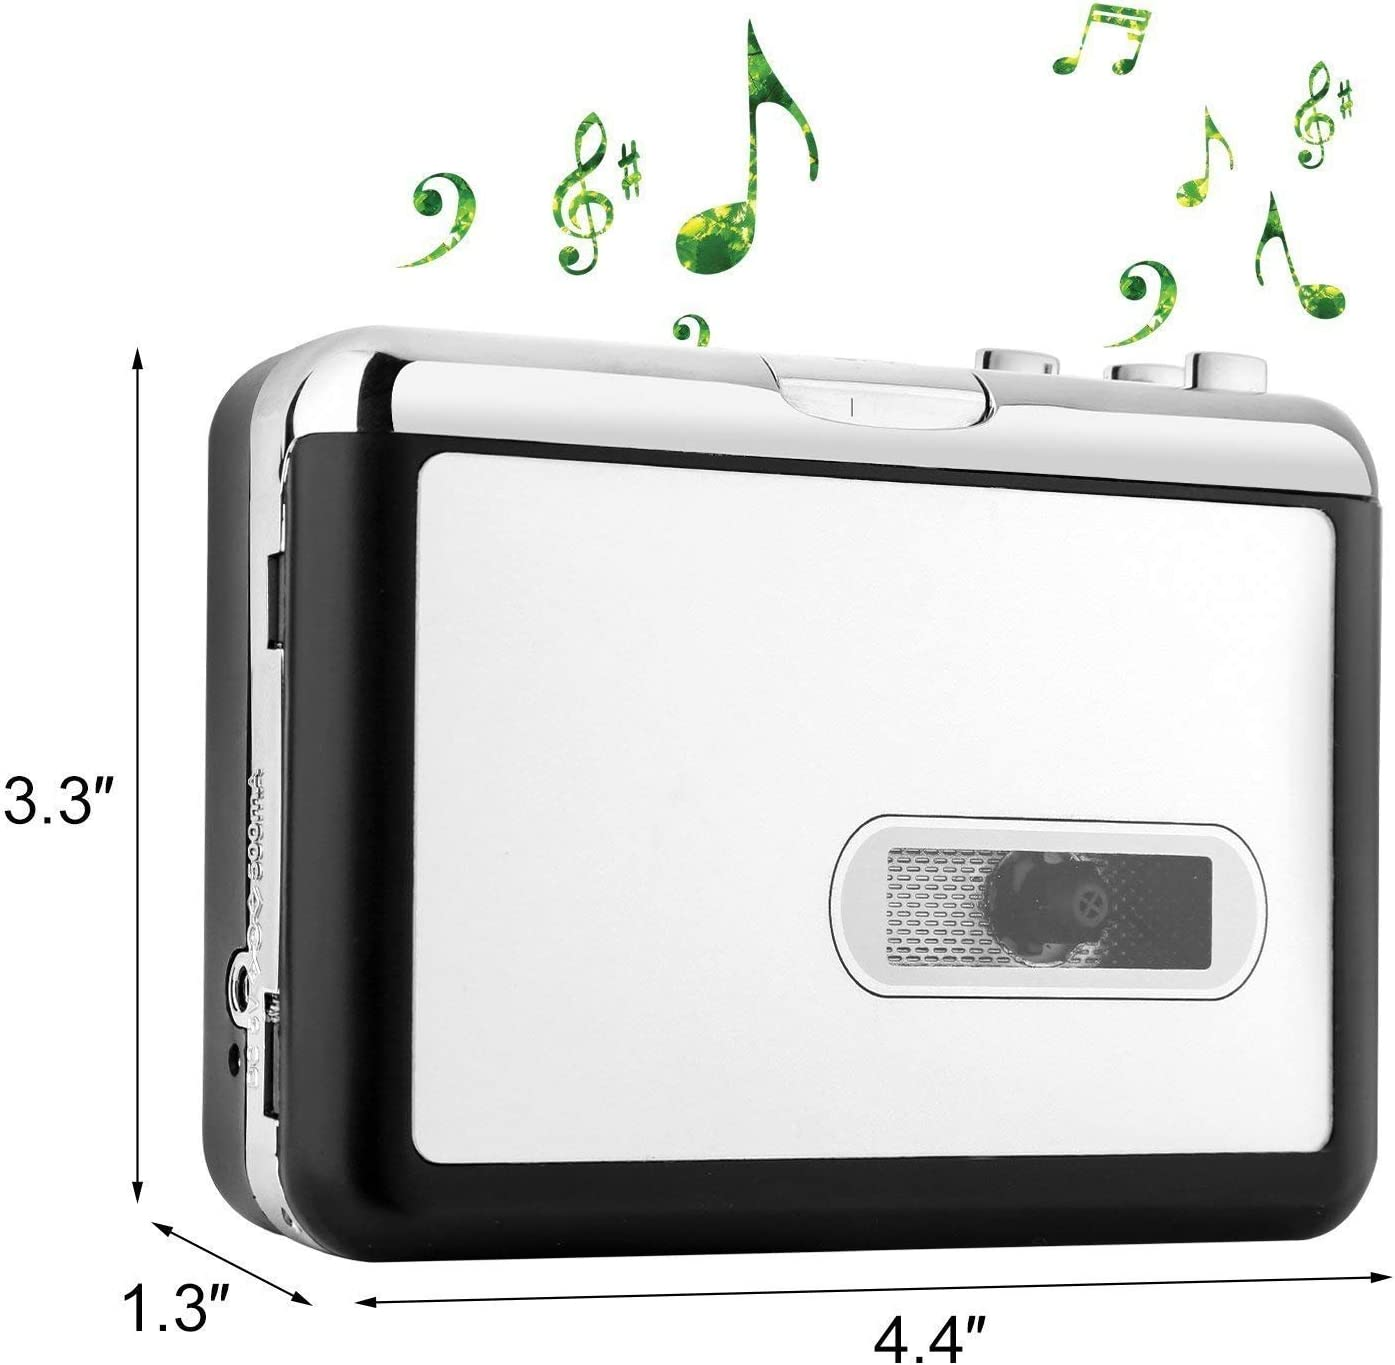 No Need Computer OfficeLead Cassette Player Tape to MP3 Converter Retro Walkman Auto Reverse Portable Audio Tape Player with Earphones